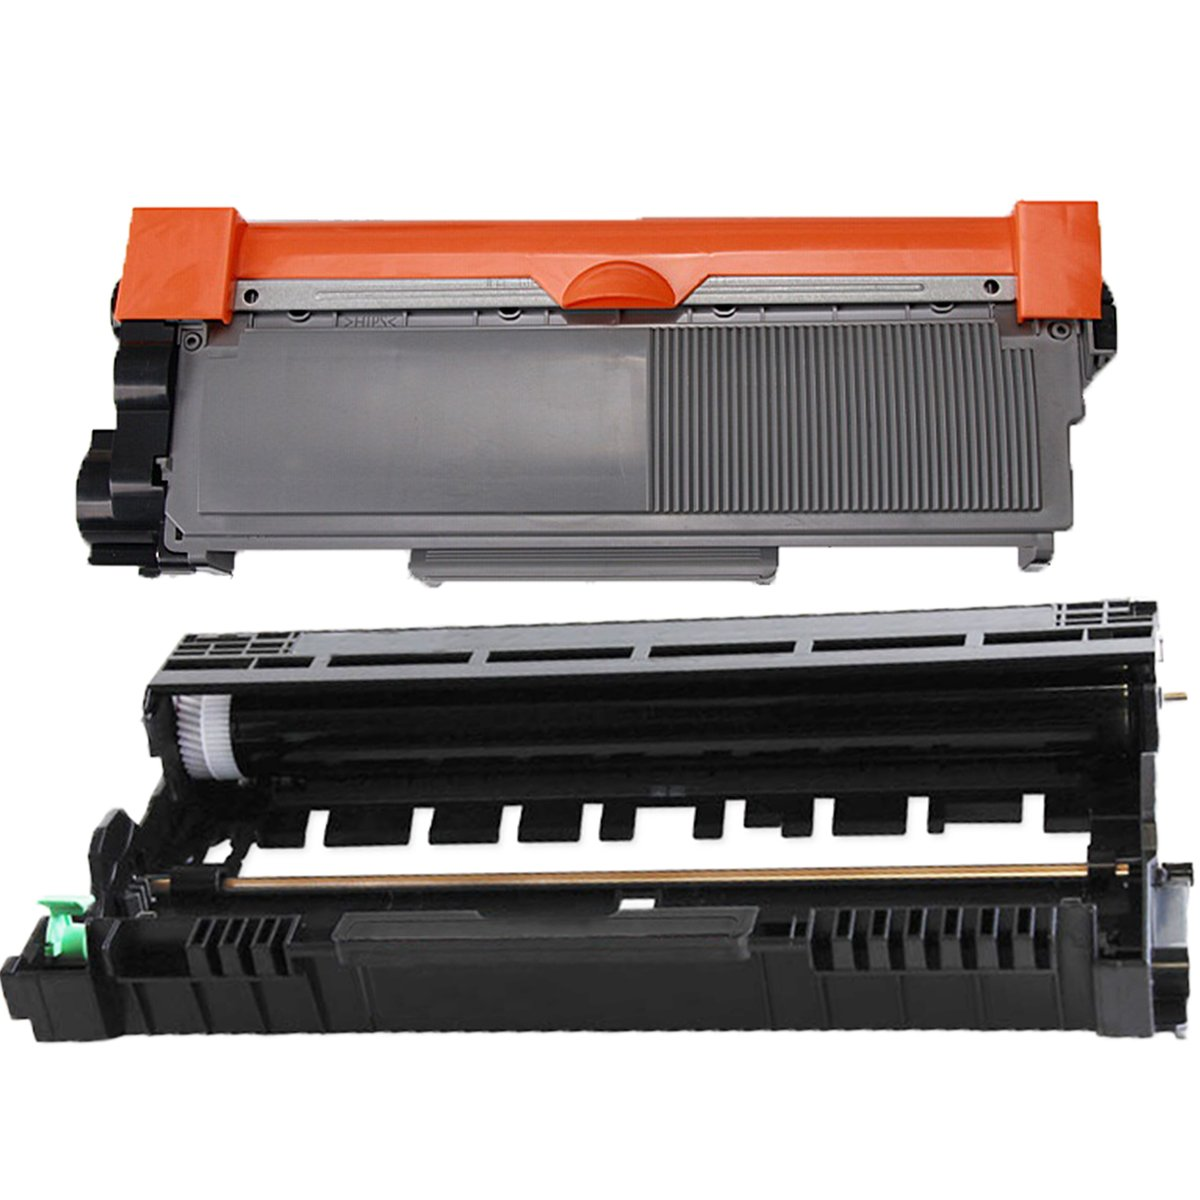 (1 Drum + 1 Toner) Inktoneram® Replacement High Yield toner cartridges & drum for Brother TN660 TN630 DR630 for Brother DR-630 TN-660 TN-630 Set DCP-L2520DW DCP-L2540DW HL-L2300D HL-L2320D HL-L2340DW HL-L2360DW HL-L23